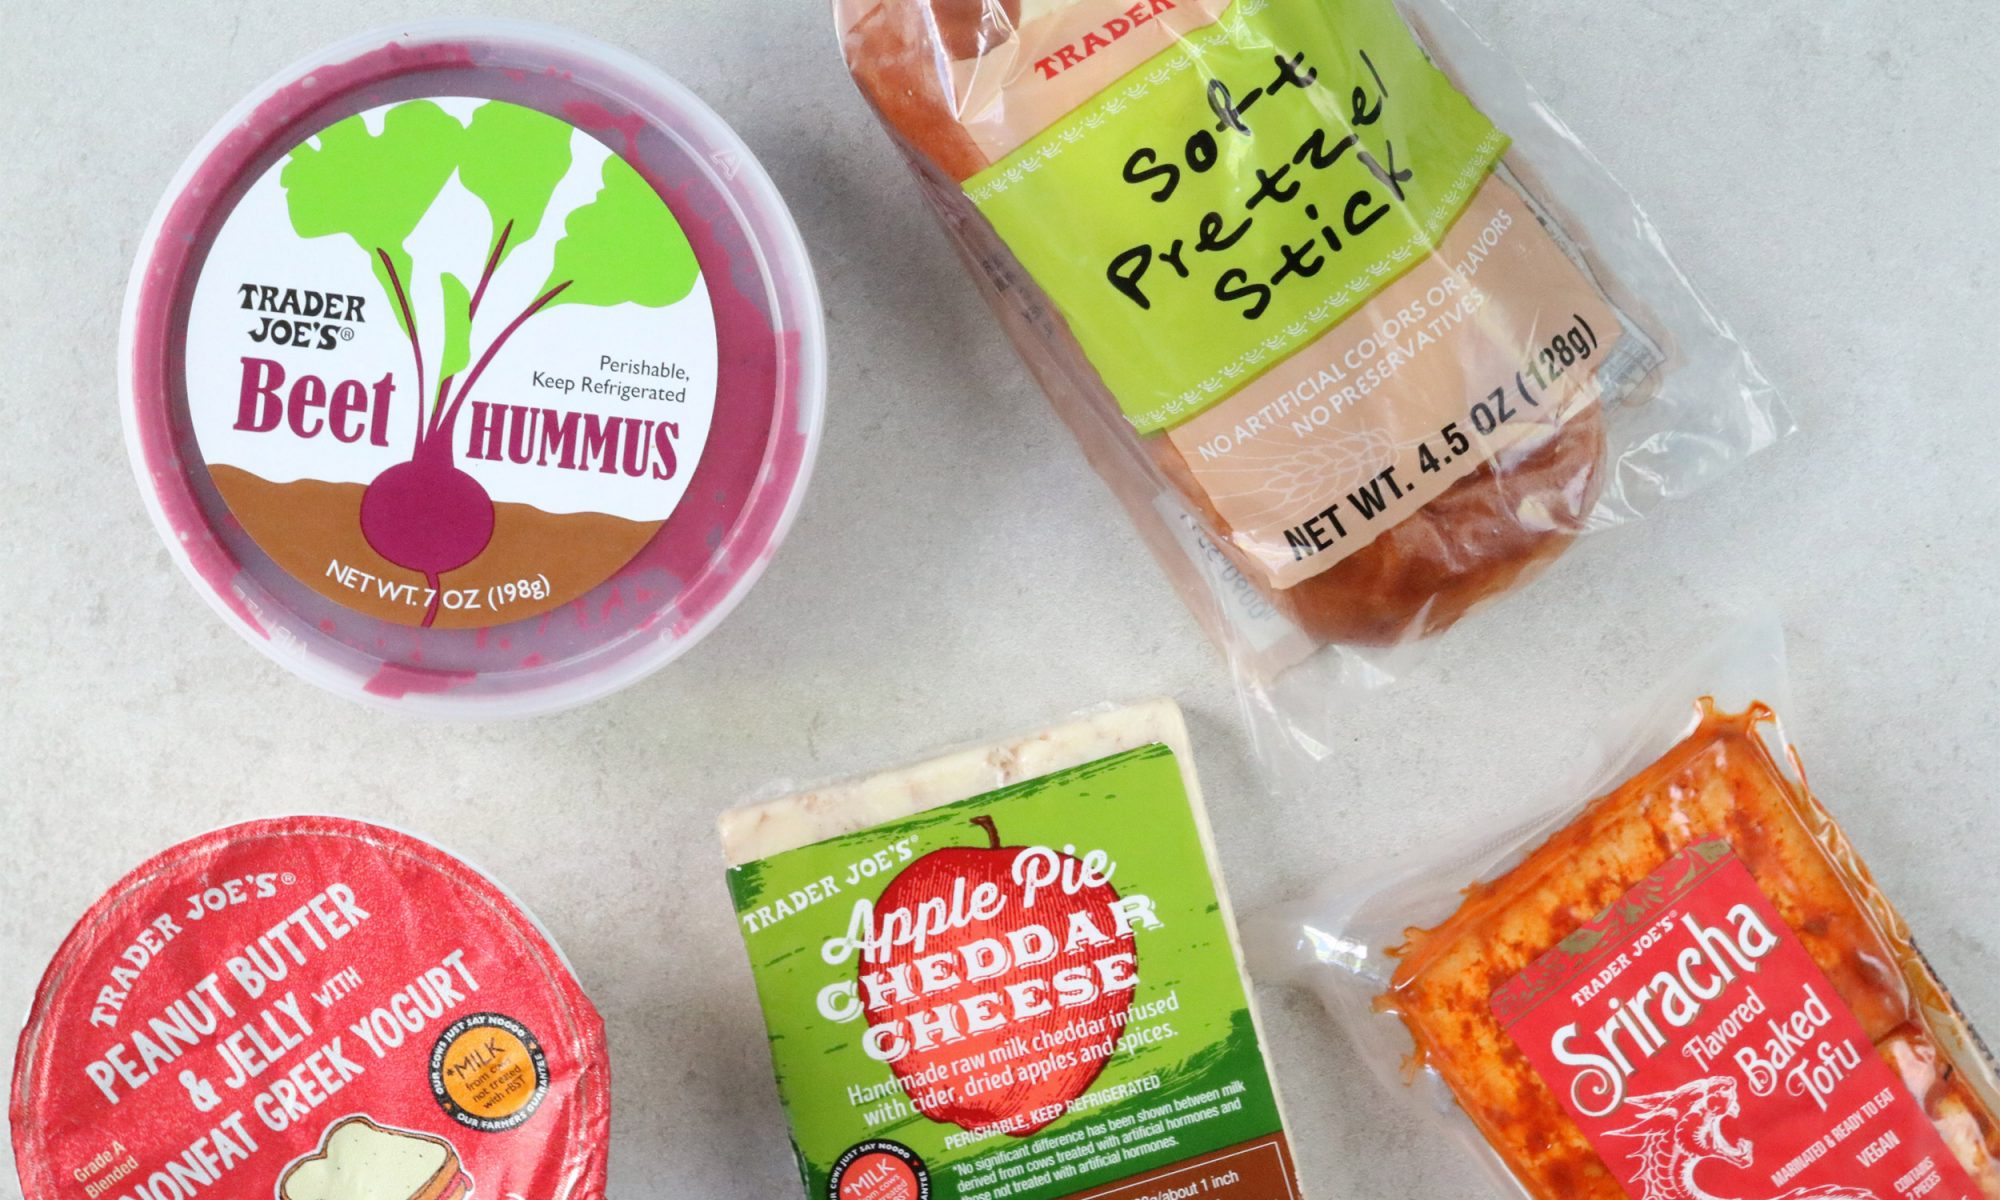 The Top 5 Trader Joe's Novelty Breakfast Foods